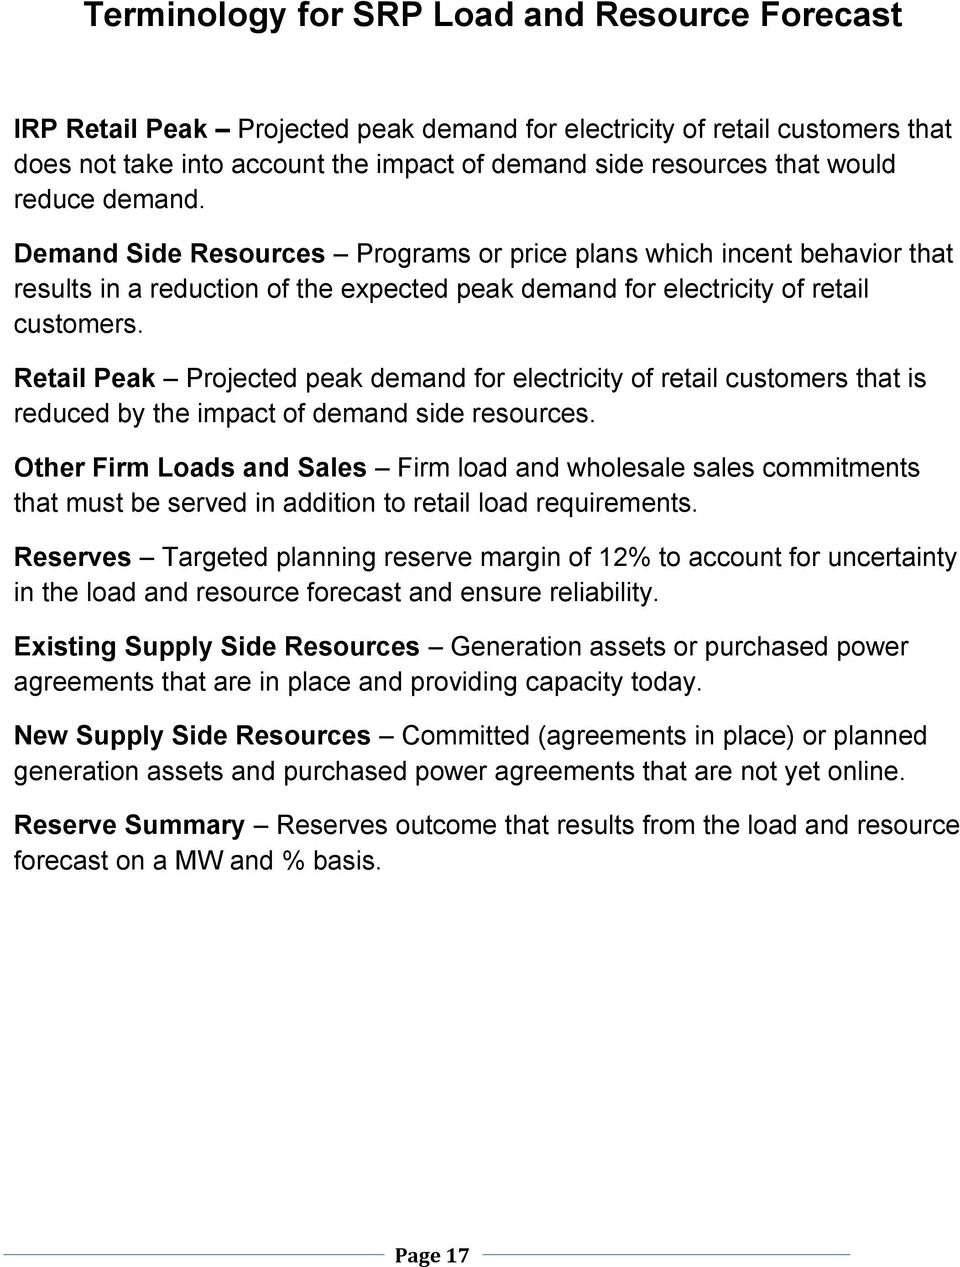 Retail Peak Projected peak demand for electricity of retail customers that is reduced by the impact of demand side resources.